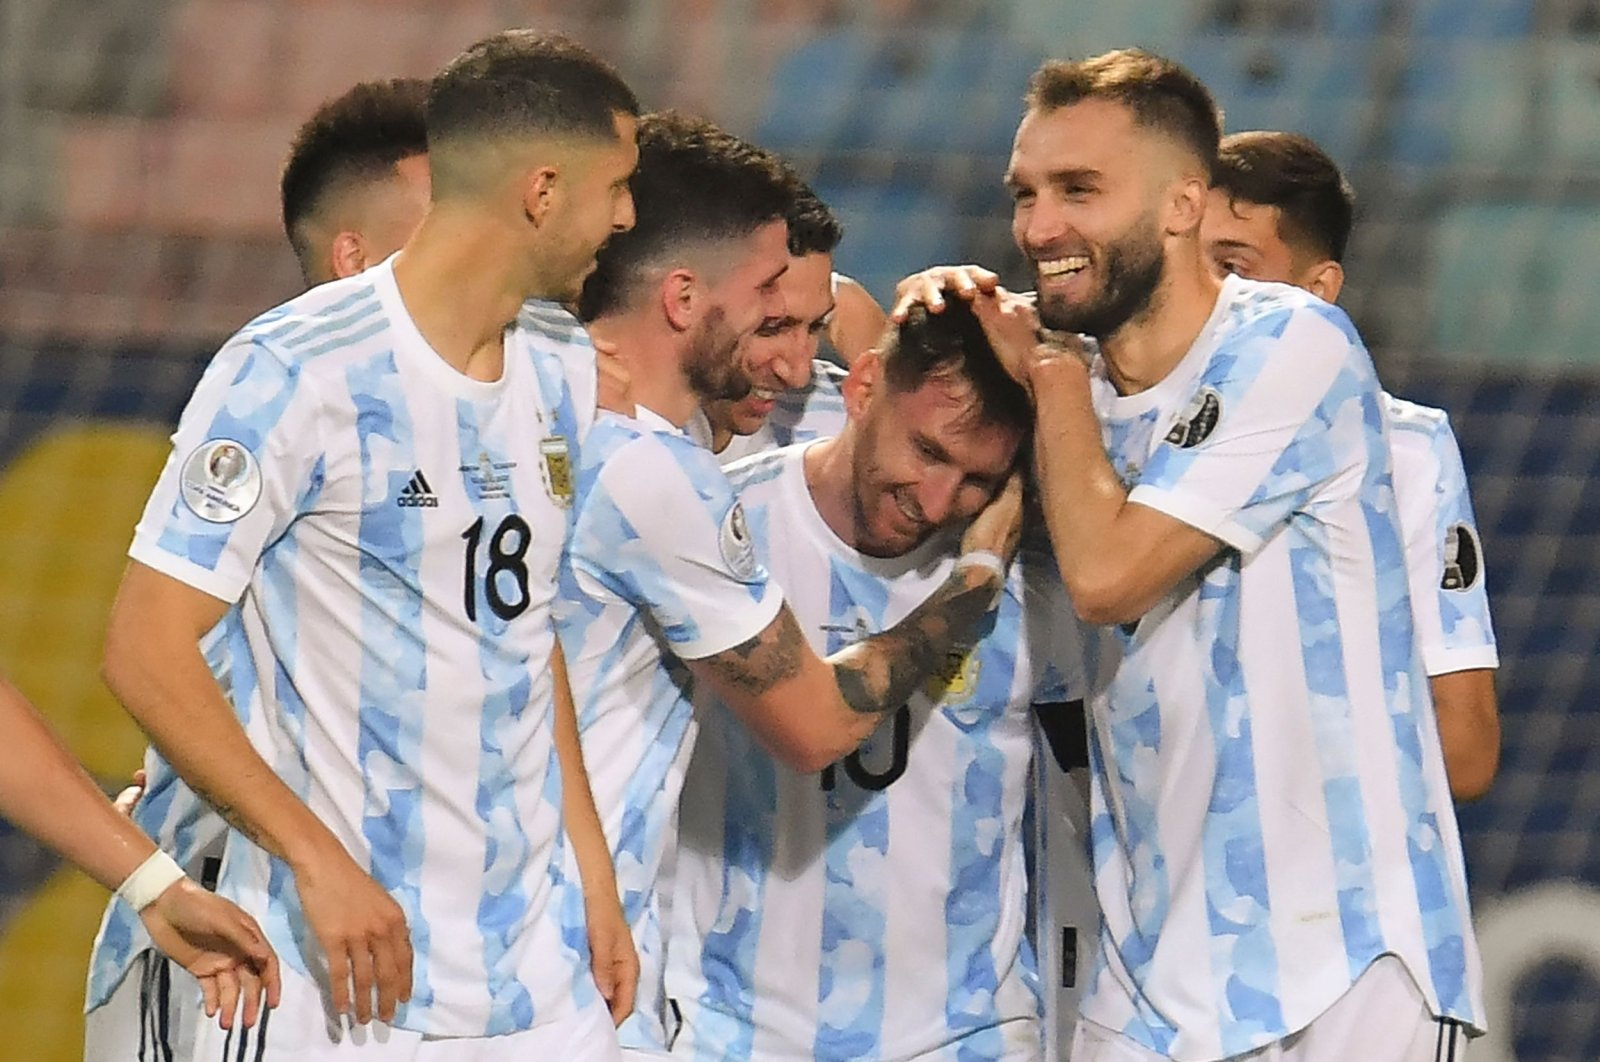 Argentina's Lionel Messi (C) celebrates with teammates after scoring against Ecuador during their 2021 Copa America quarterfinal match at the Olympic Stadium in Goiania, Brazil, July 3, 2021. (AFP Photo)